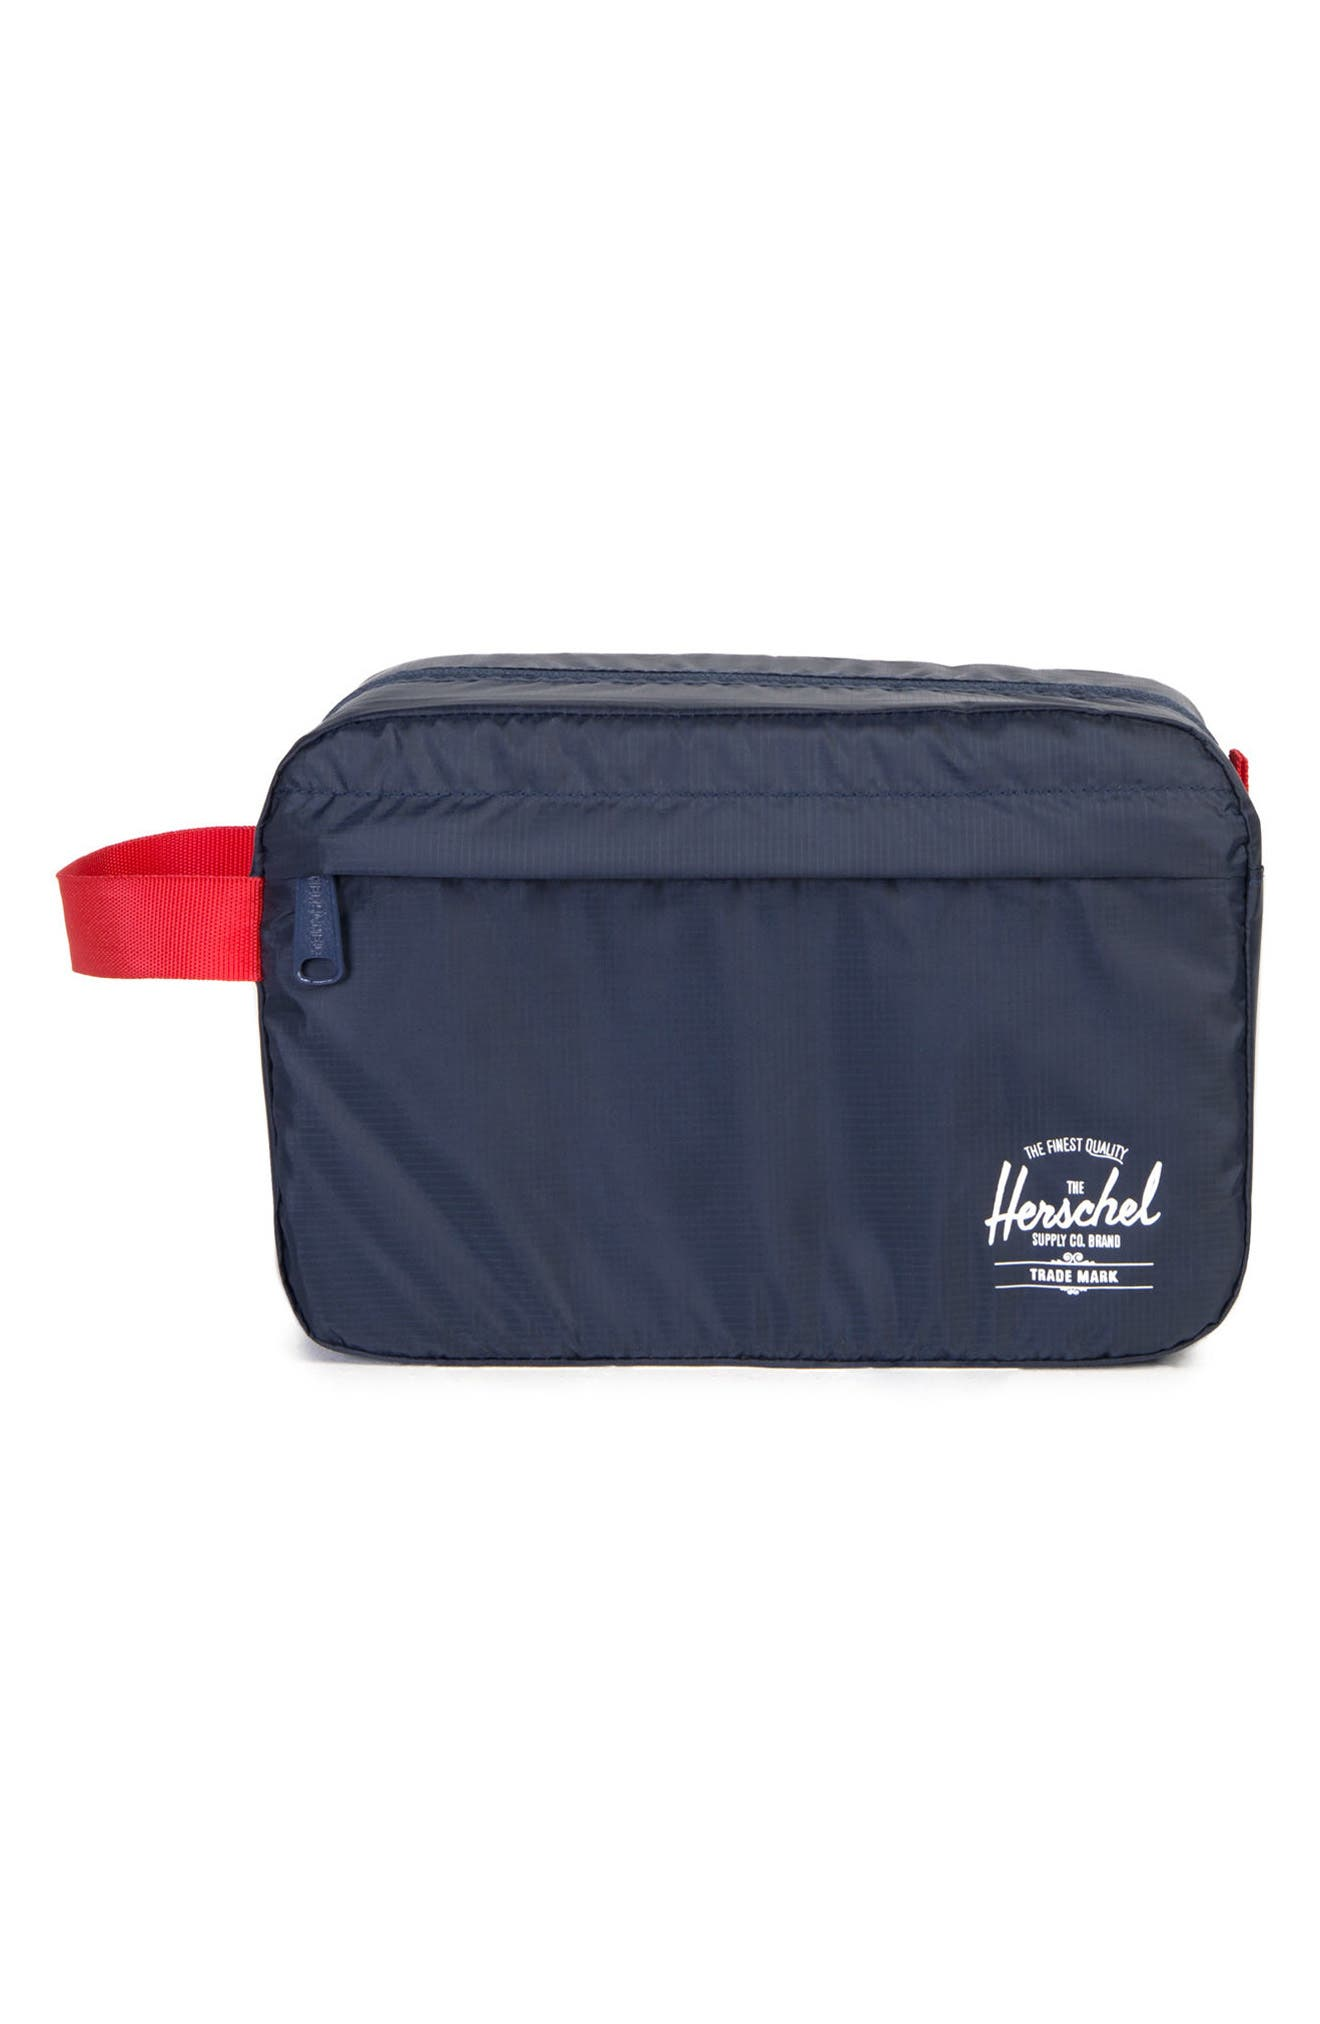 Toiletry Bag,                         Main,                         color, NAVY/ RED